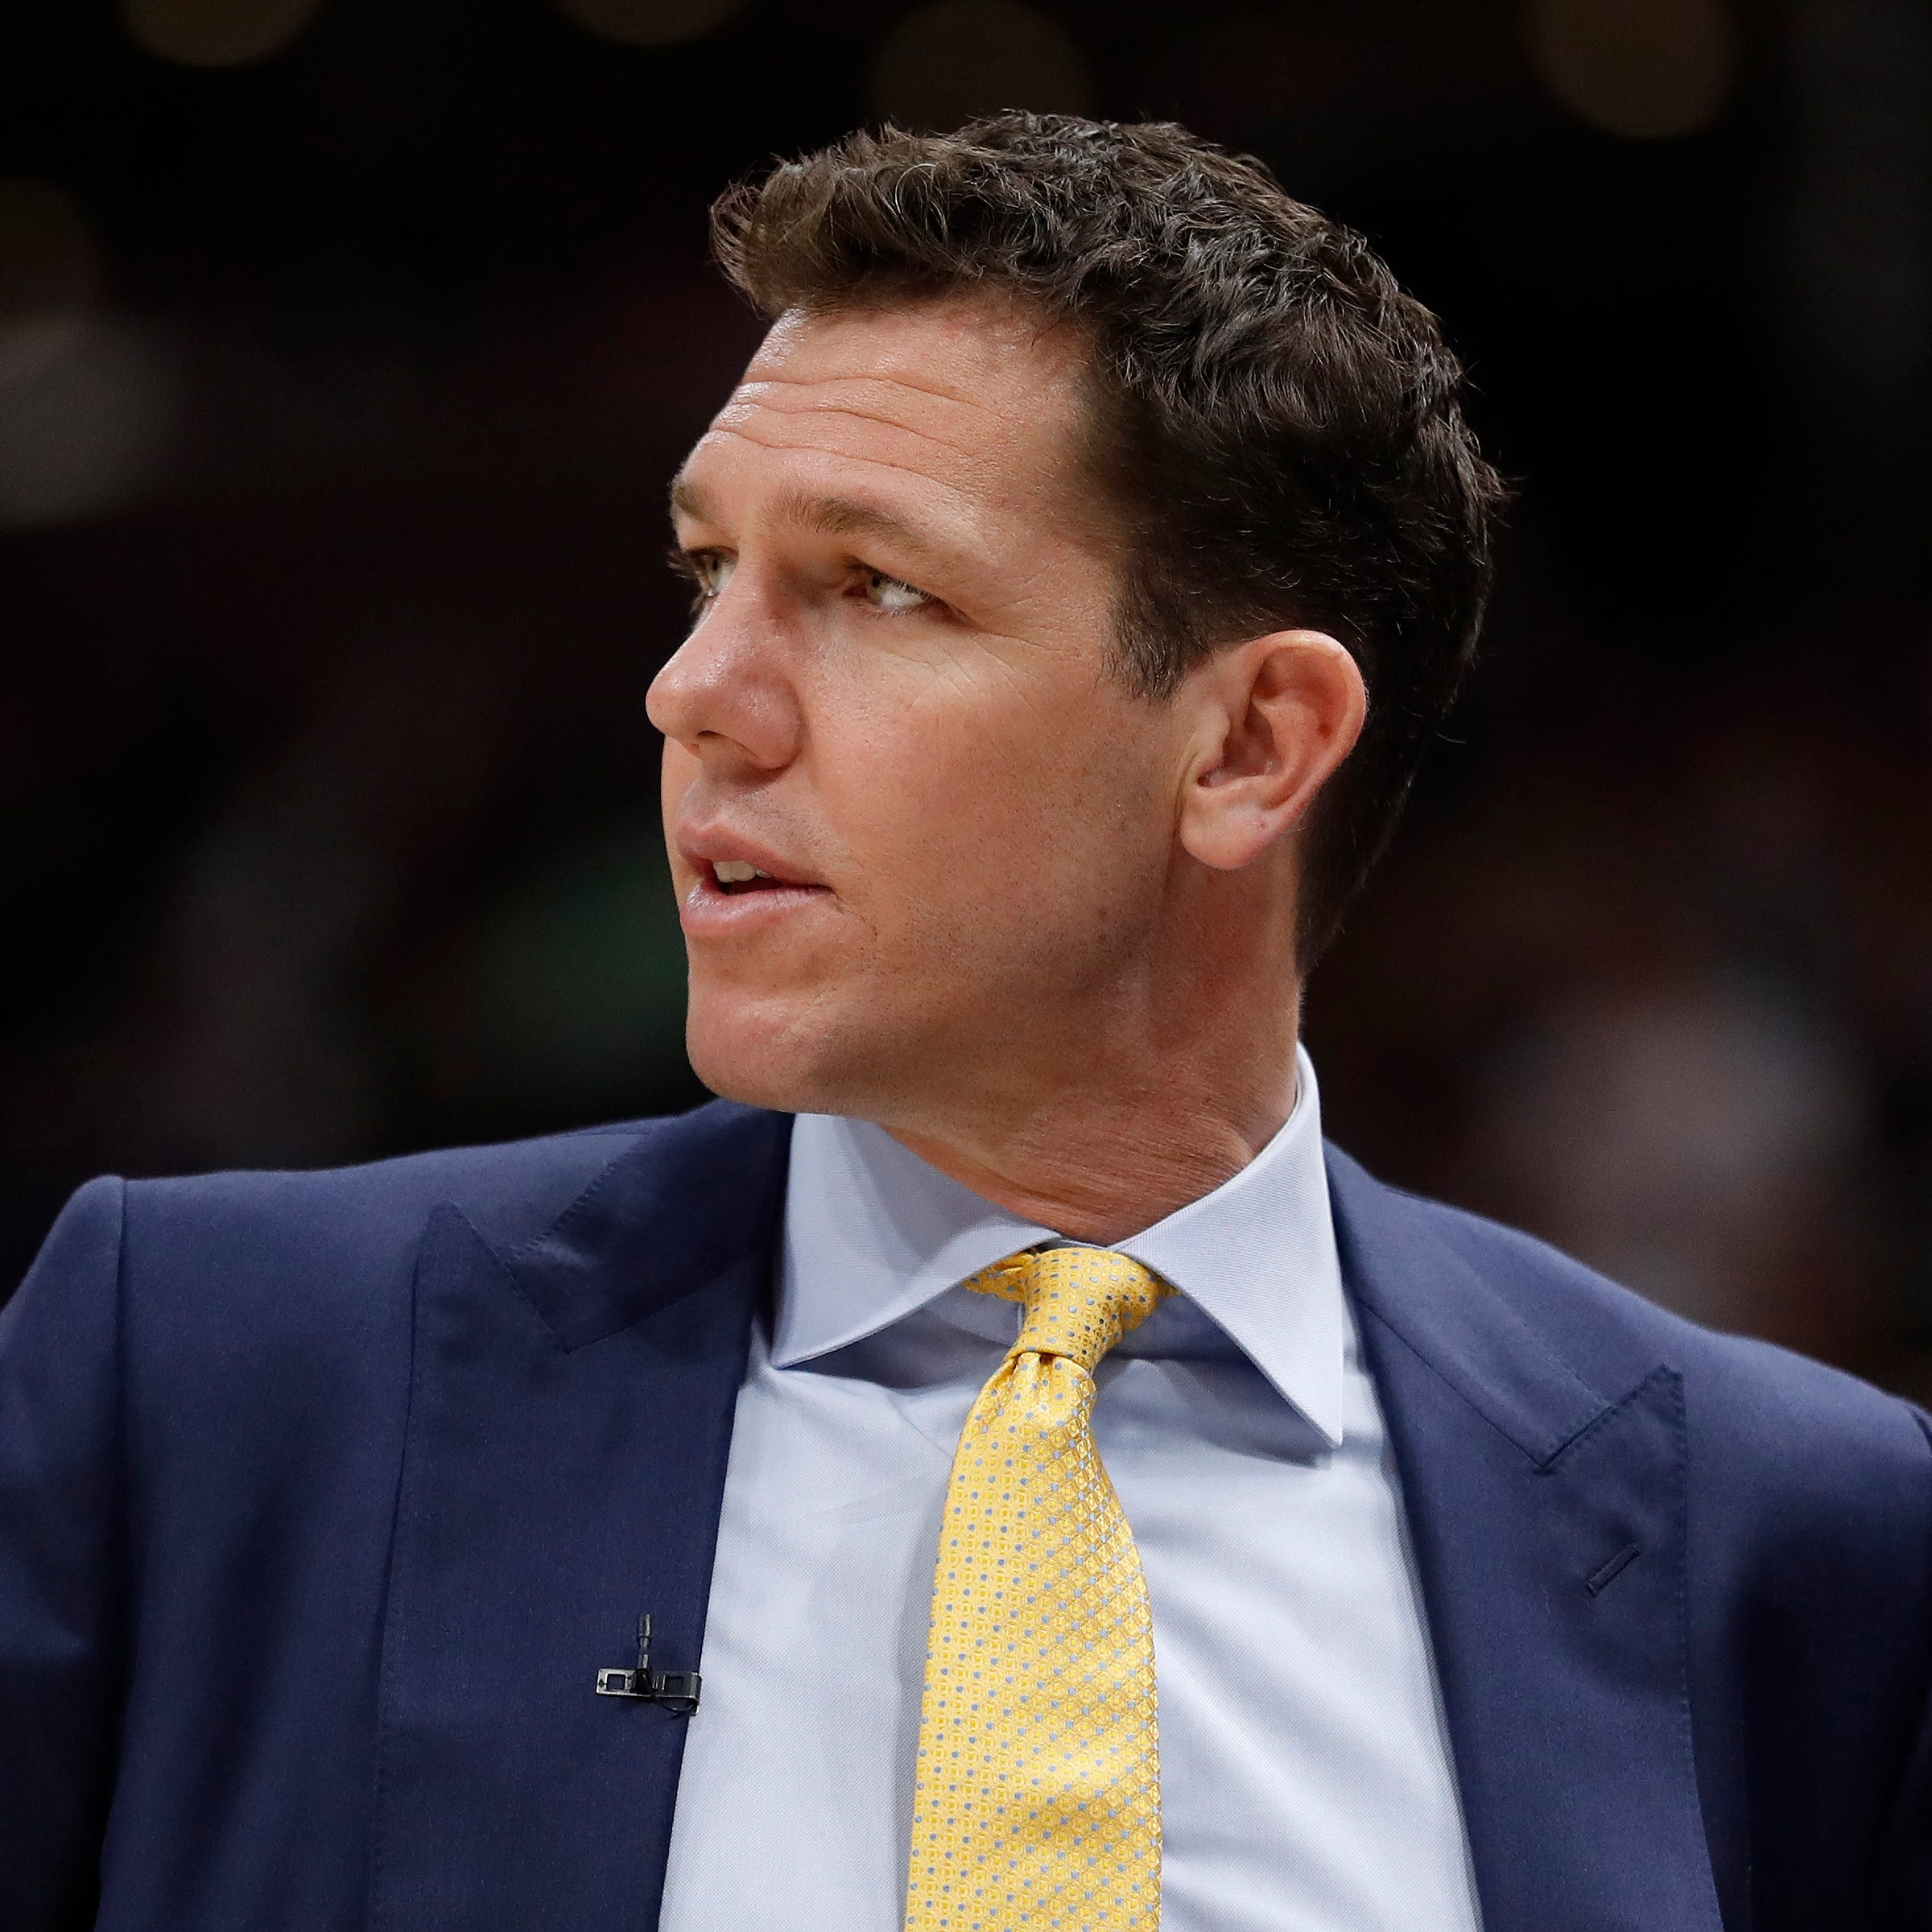 TMZ report: NBA head coach, former Arizona Wildcats player Luke Walton sued for sexual assault by reporter